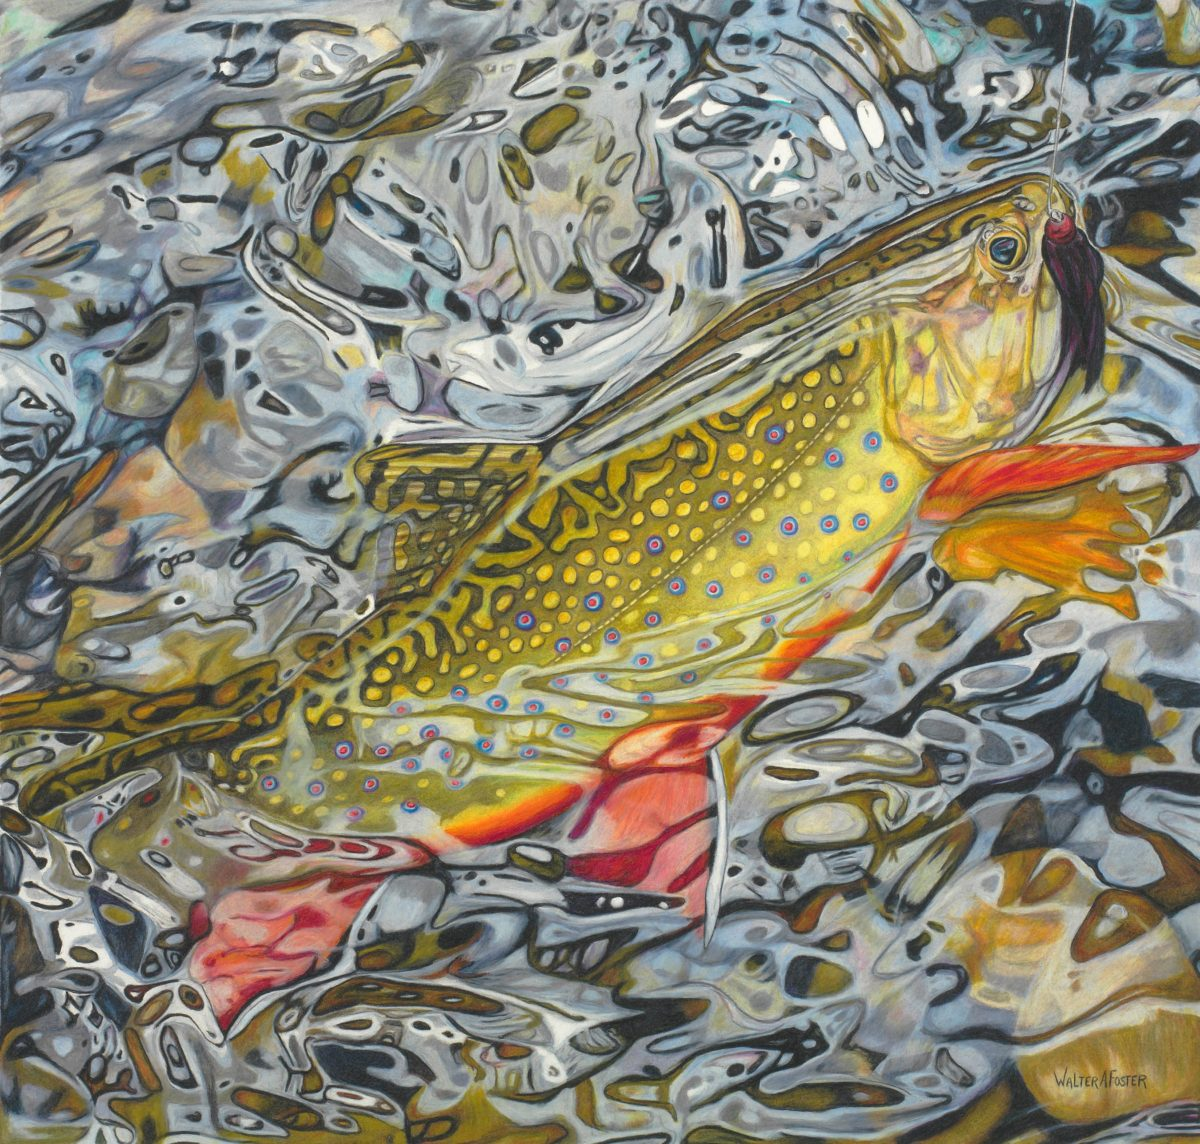 Angling Art: Walter Foster's Detailed Visions